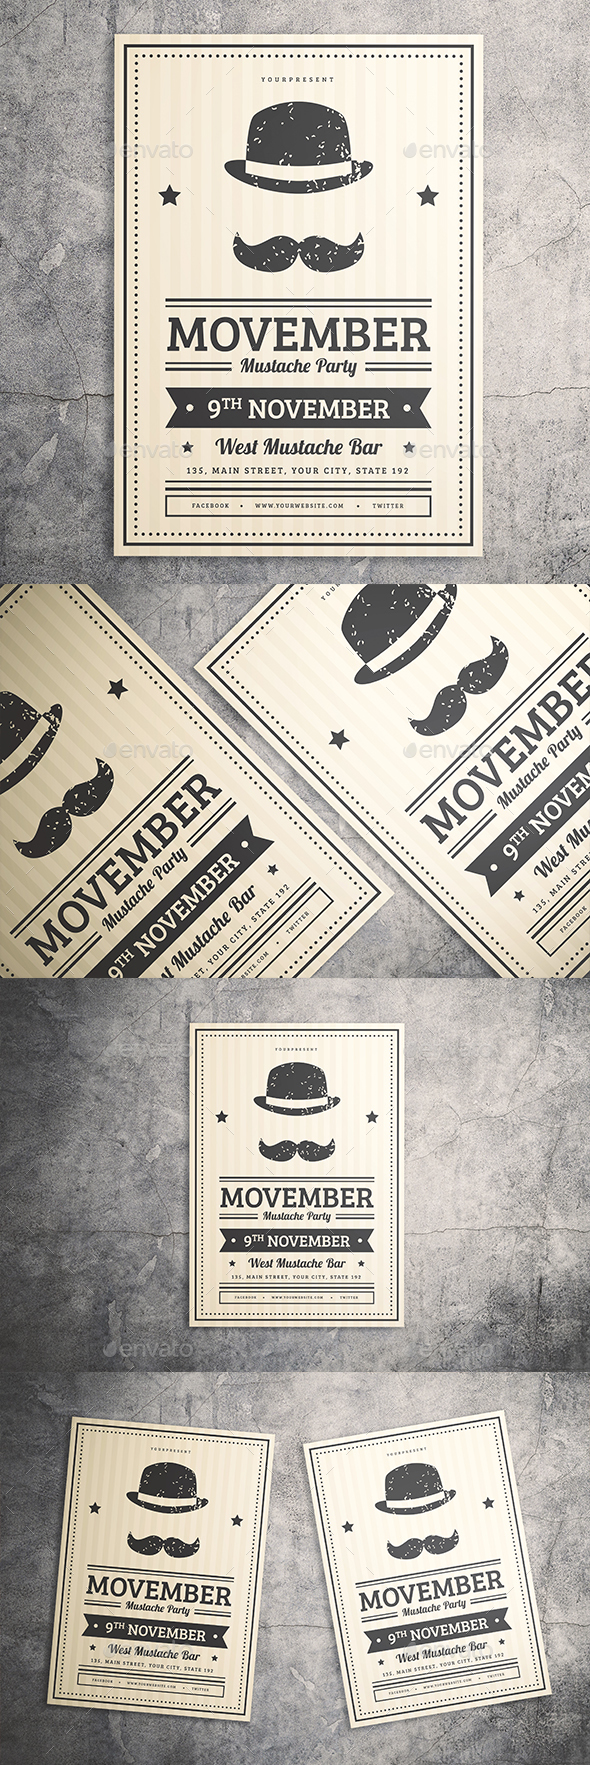 Mustache Party Flyer - Events Flyers